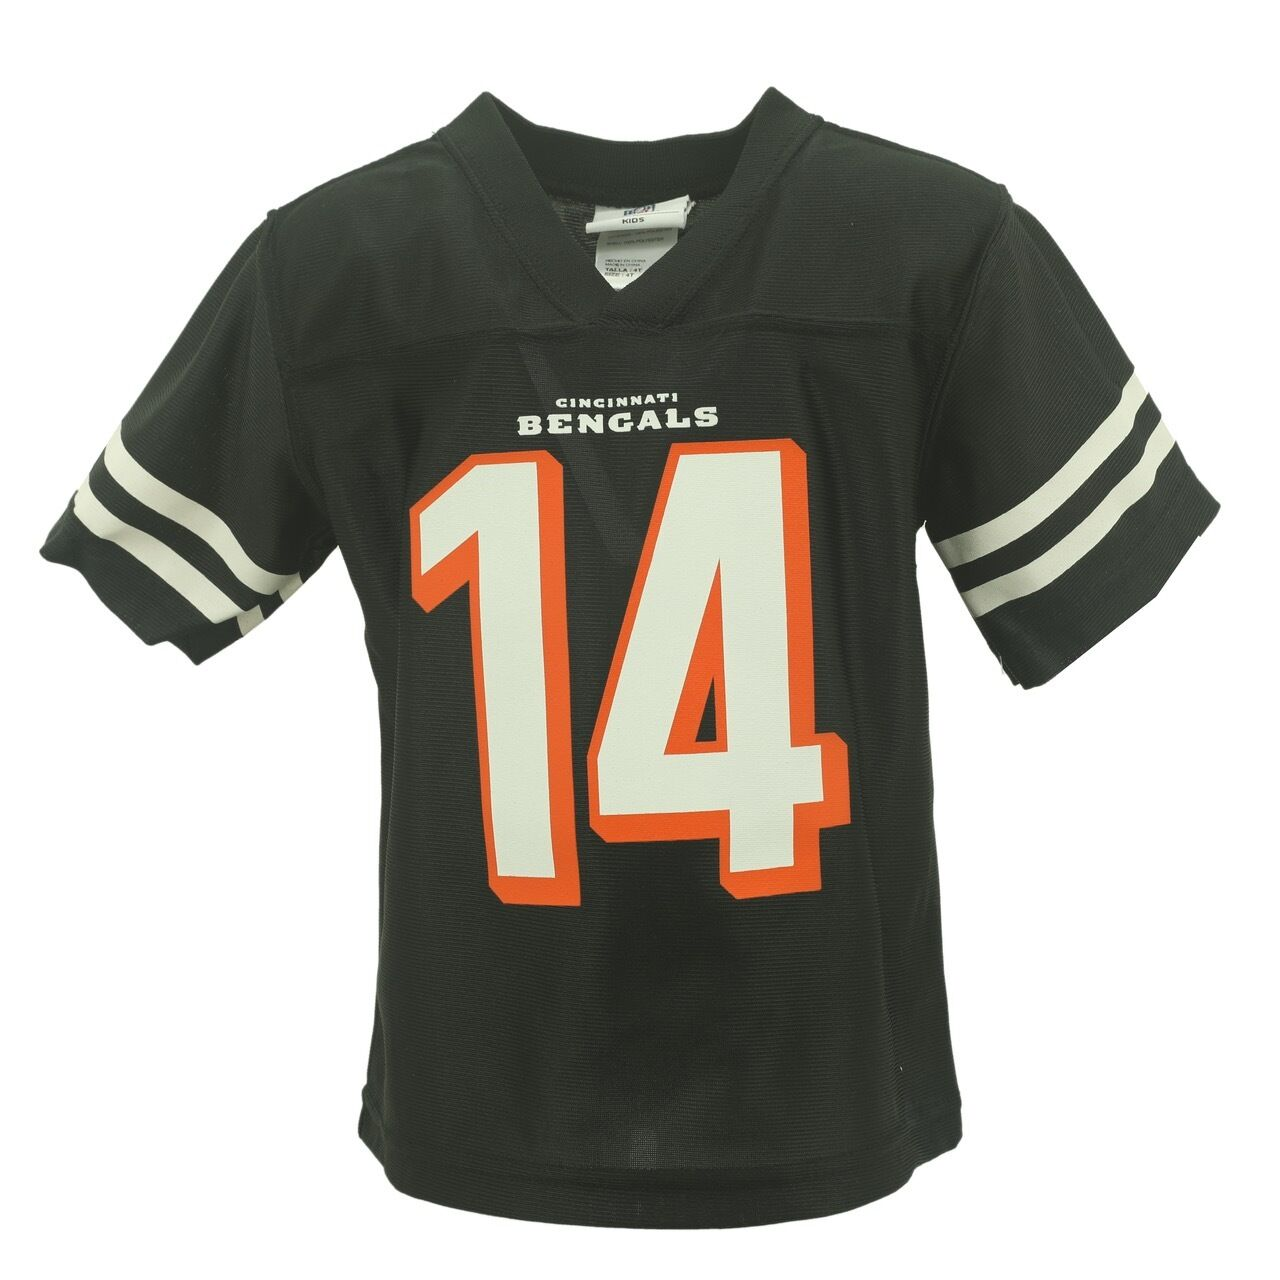 Cincinnati Bengals Andy Dalton 14 Official NFL Youth Kids Toddler Jersey New a92c595dd